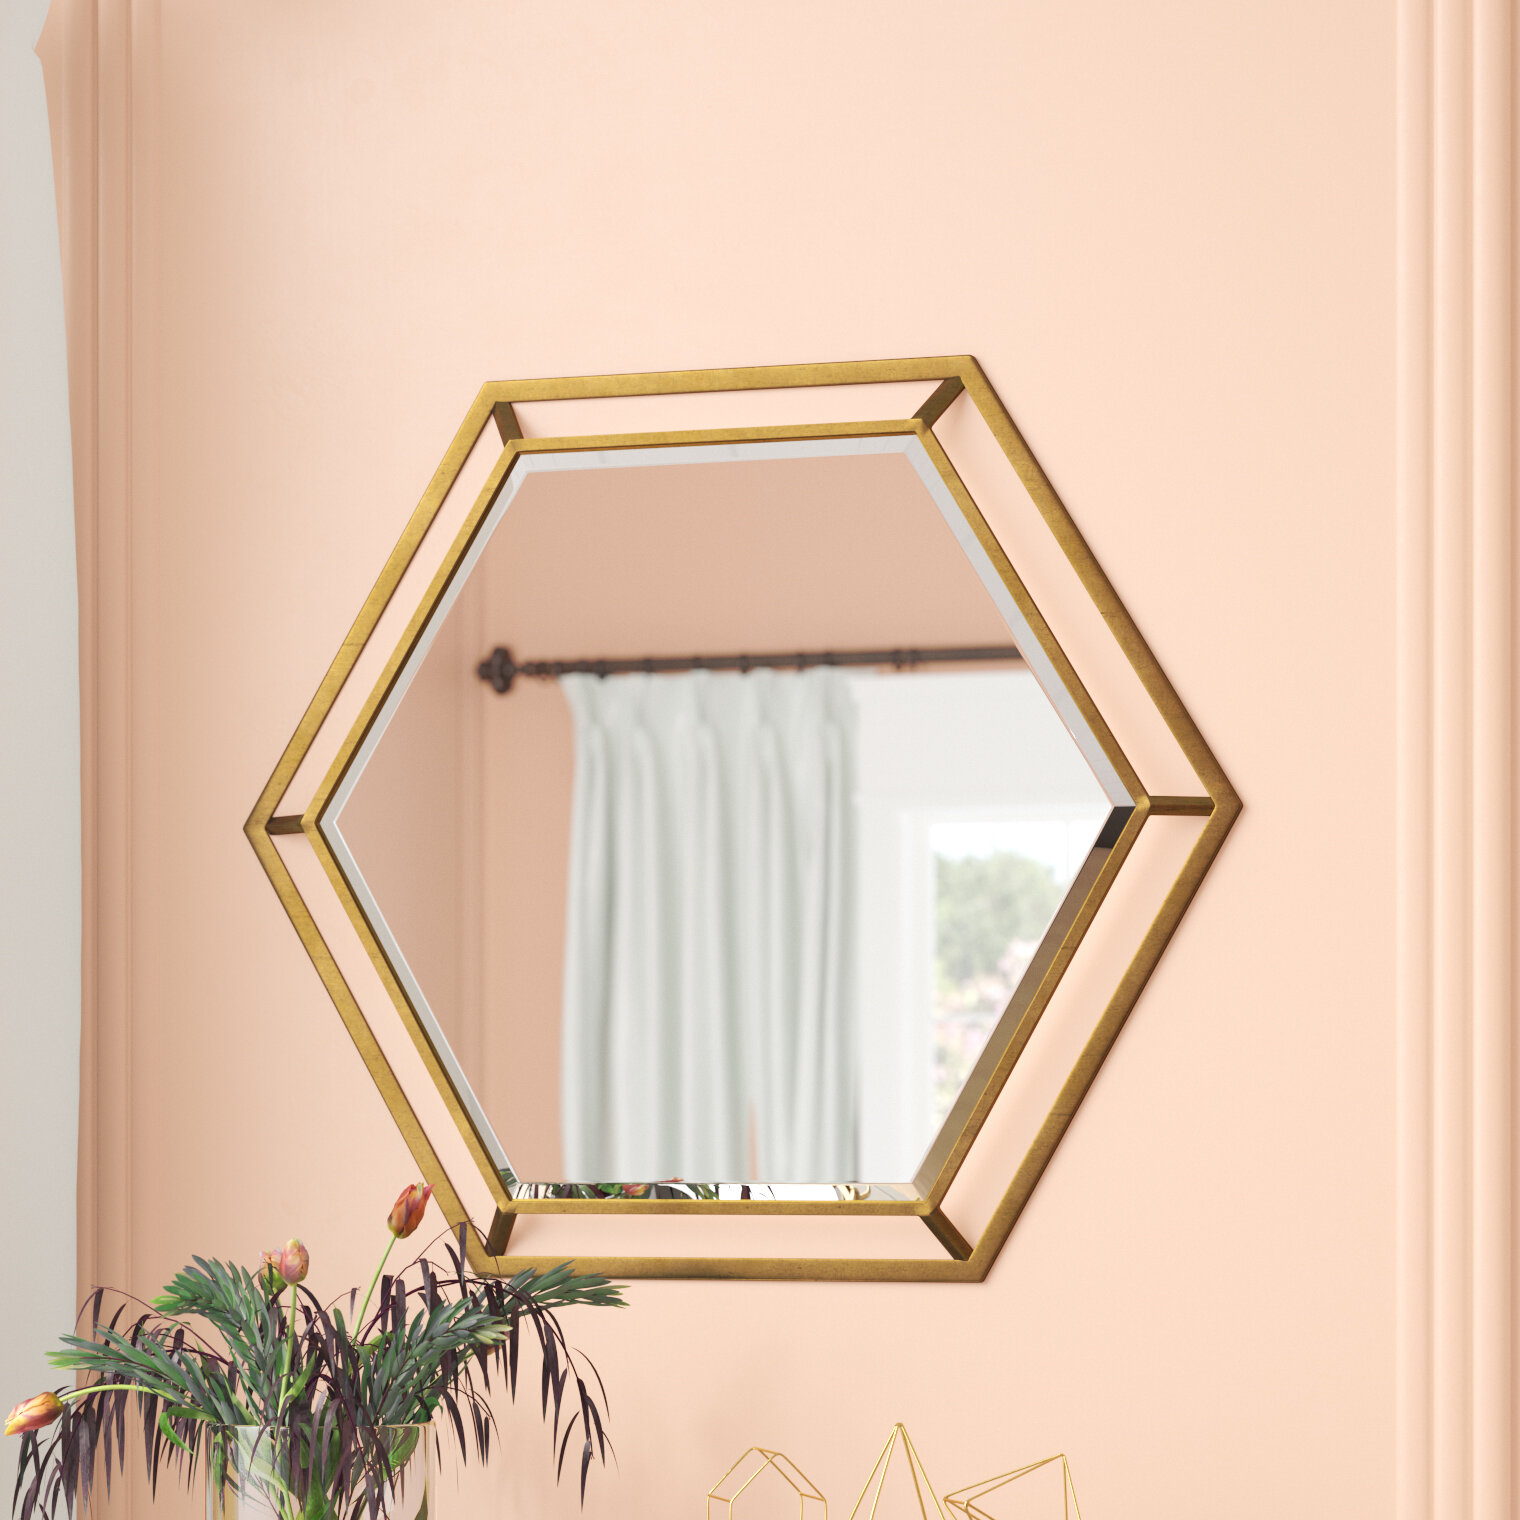 Kelston Mills Modern & Contemporary Beveled Accent Mirror With Regard To Willacoochee Traditional Beveled Accent Mirrors (Image 8 of 20)